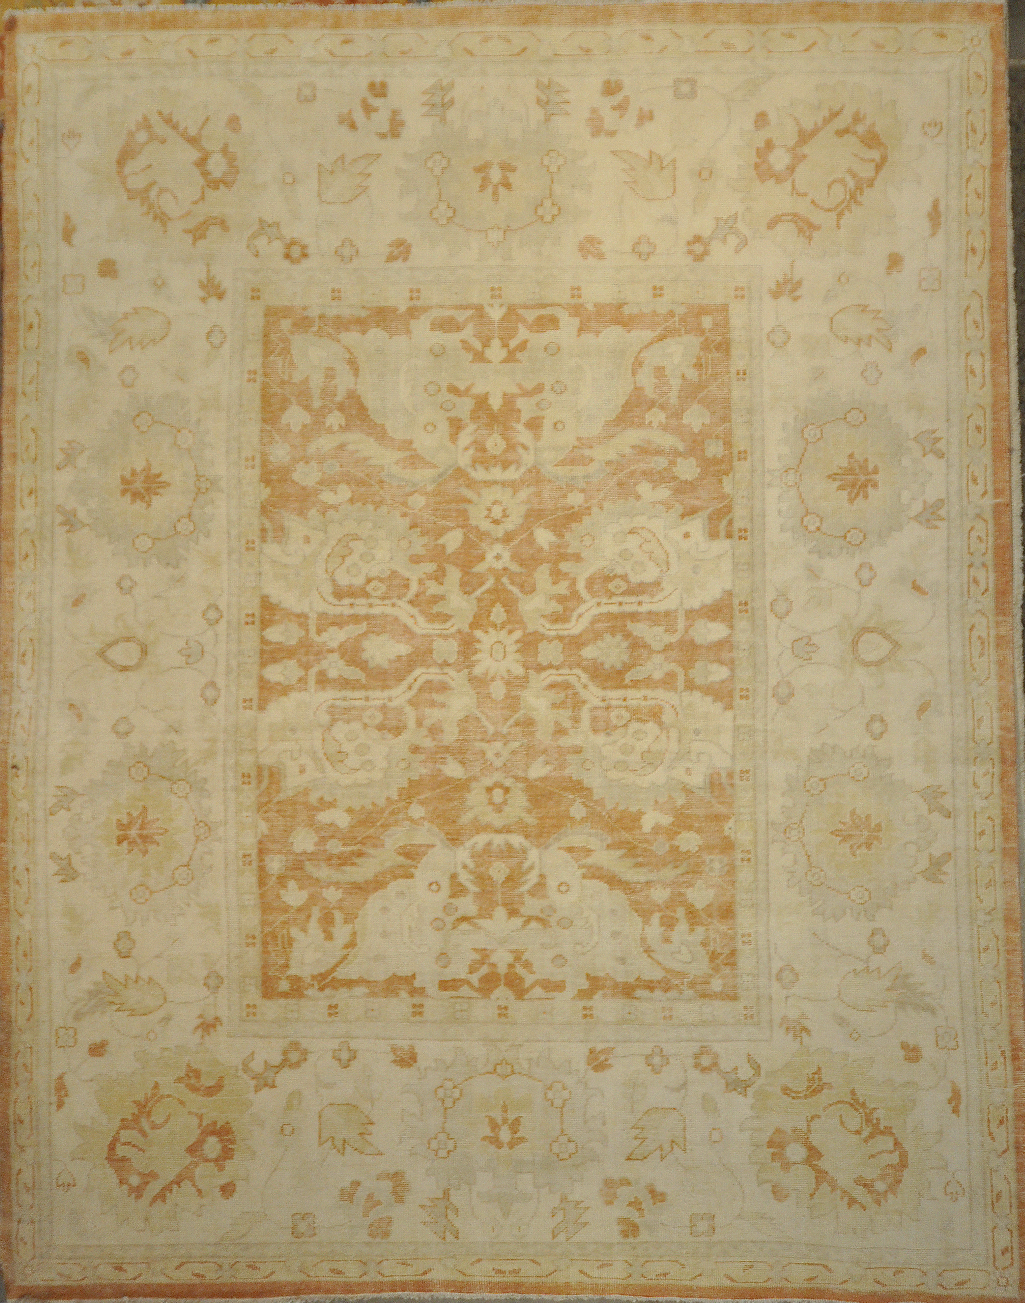 Fine Montecito Usak Rug | Rugs & More | Santa Barbara Design Center 44425